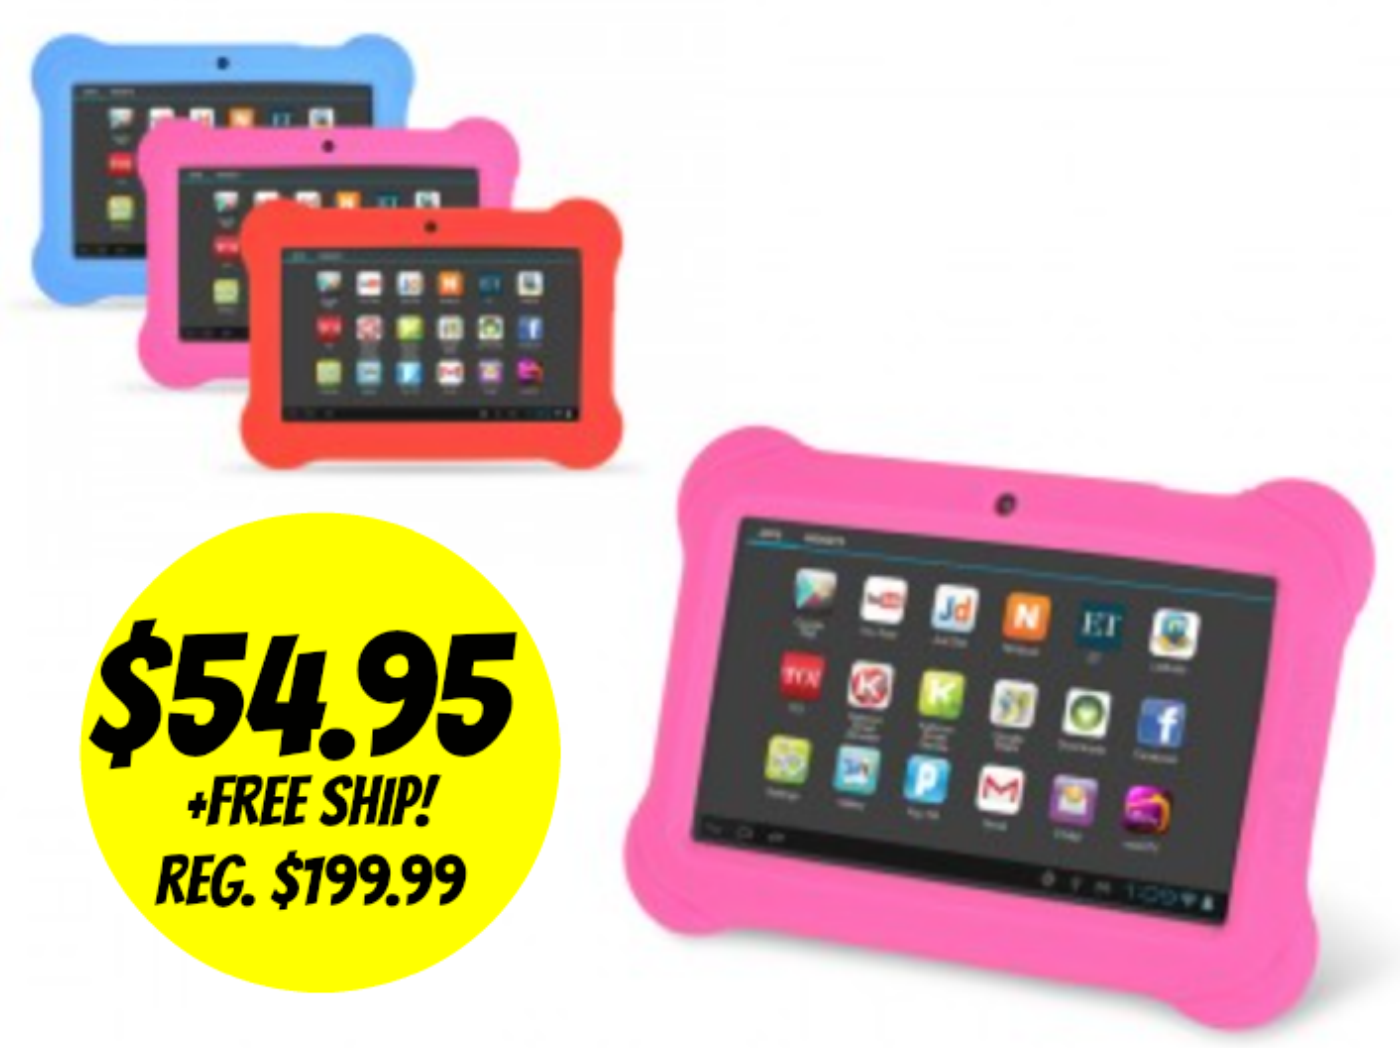 http://www.thebinderladies.com/2014/09/a4c-orbo-jr-7-android-kids-tablet-w-gel.html#.VBC7TUvdtbw